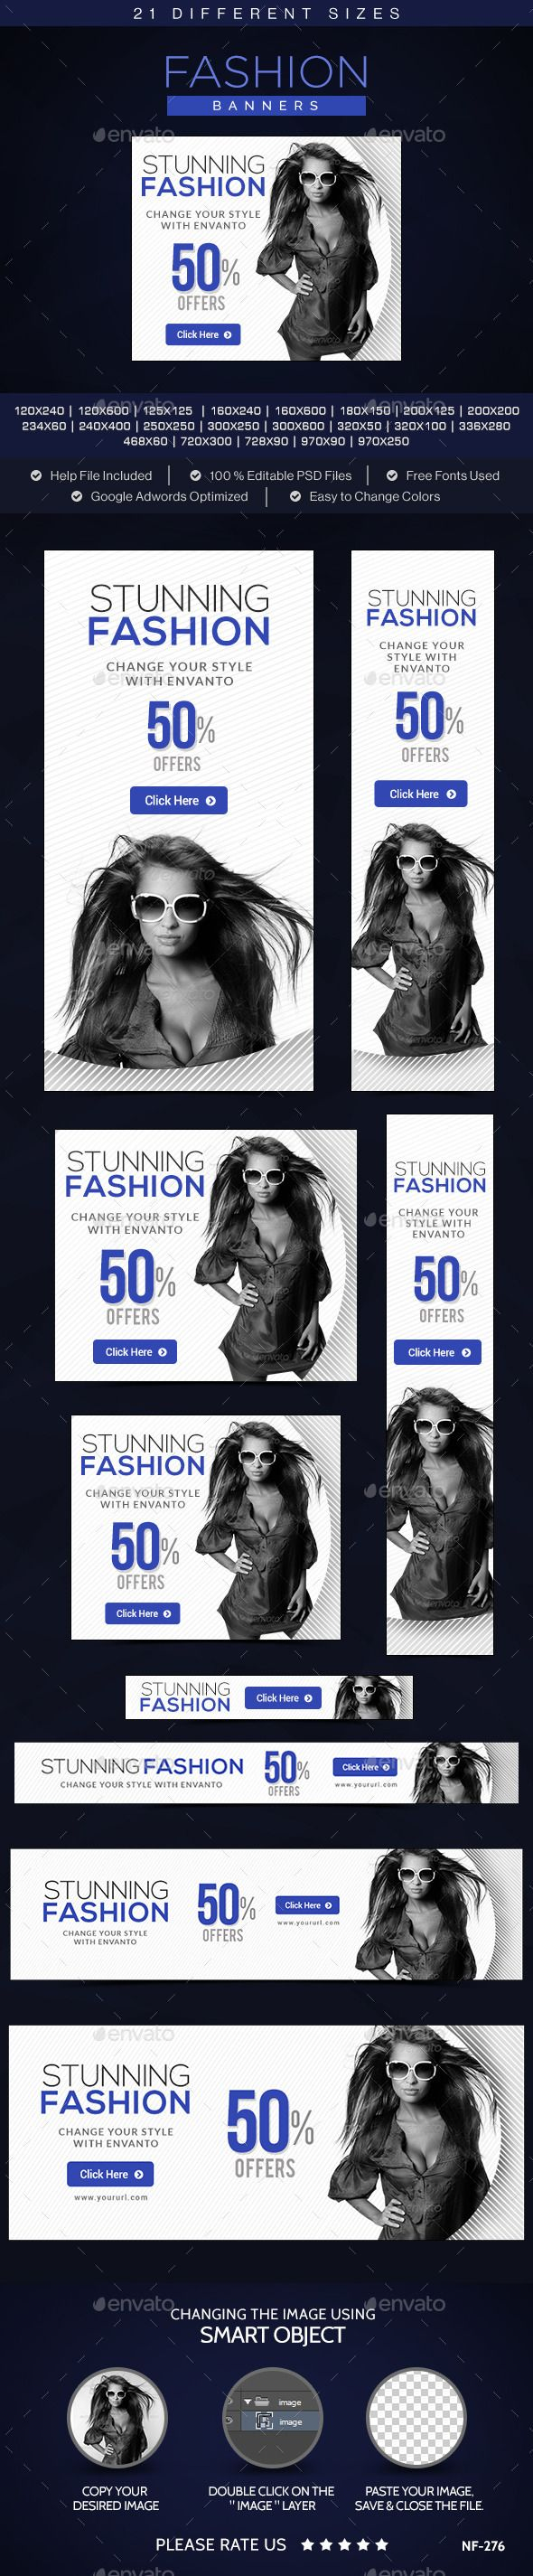 Fashion Banners - Banners & Ads Web Template PSD. Download here: http://graphicriver.net/item/fashion-banners/10706528?s_rank=1776&ref=yinkira